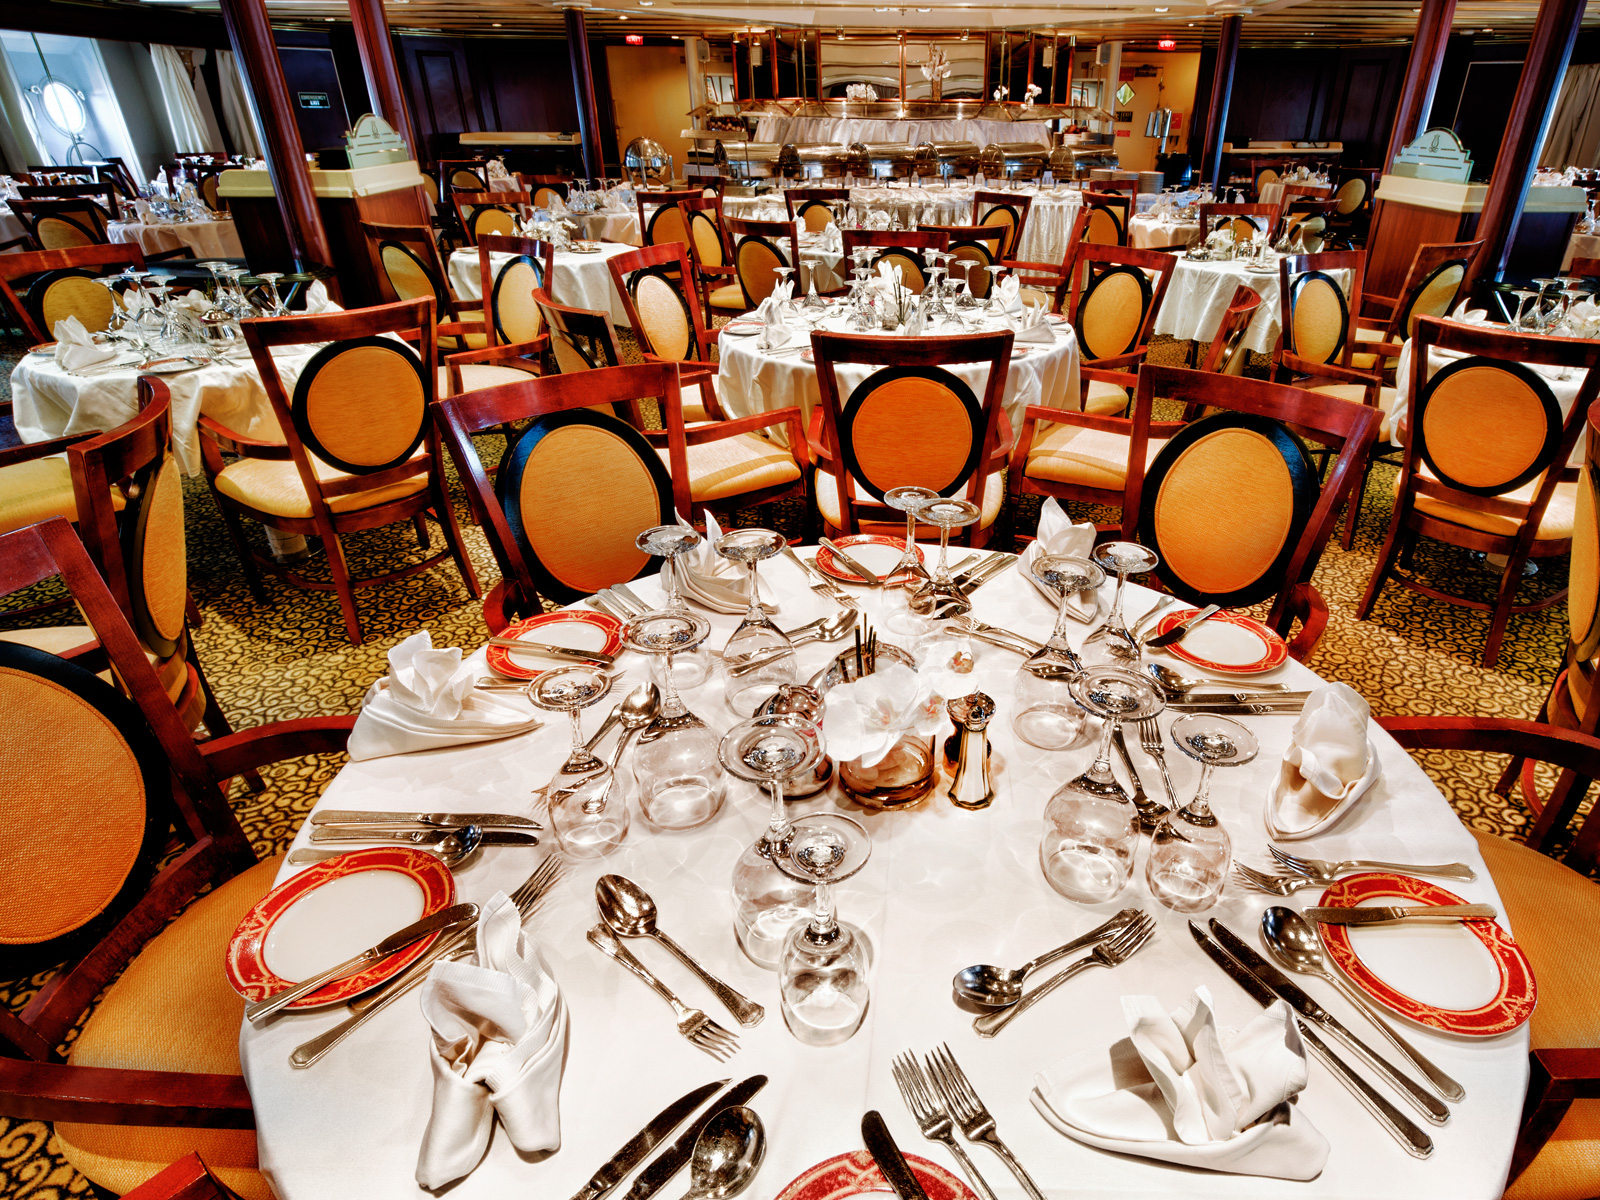 Ocean Diamond dining room | The Small Cruise Ship Collection